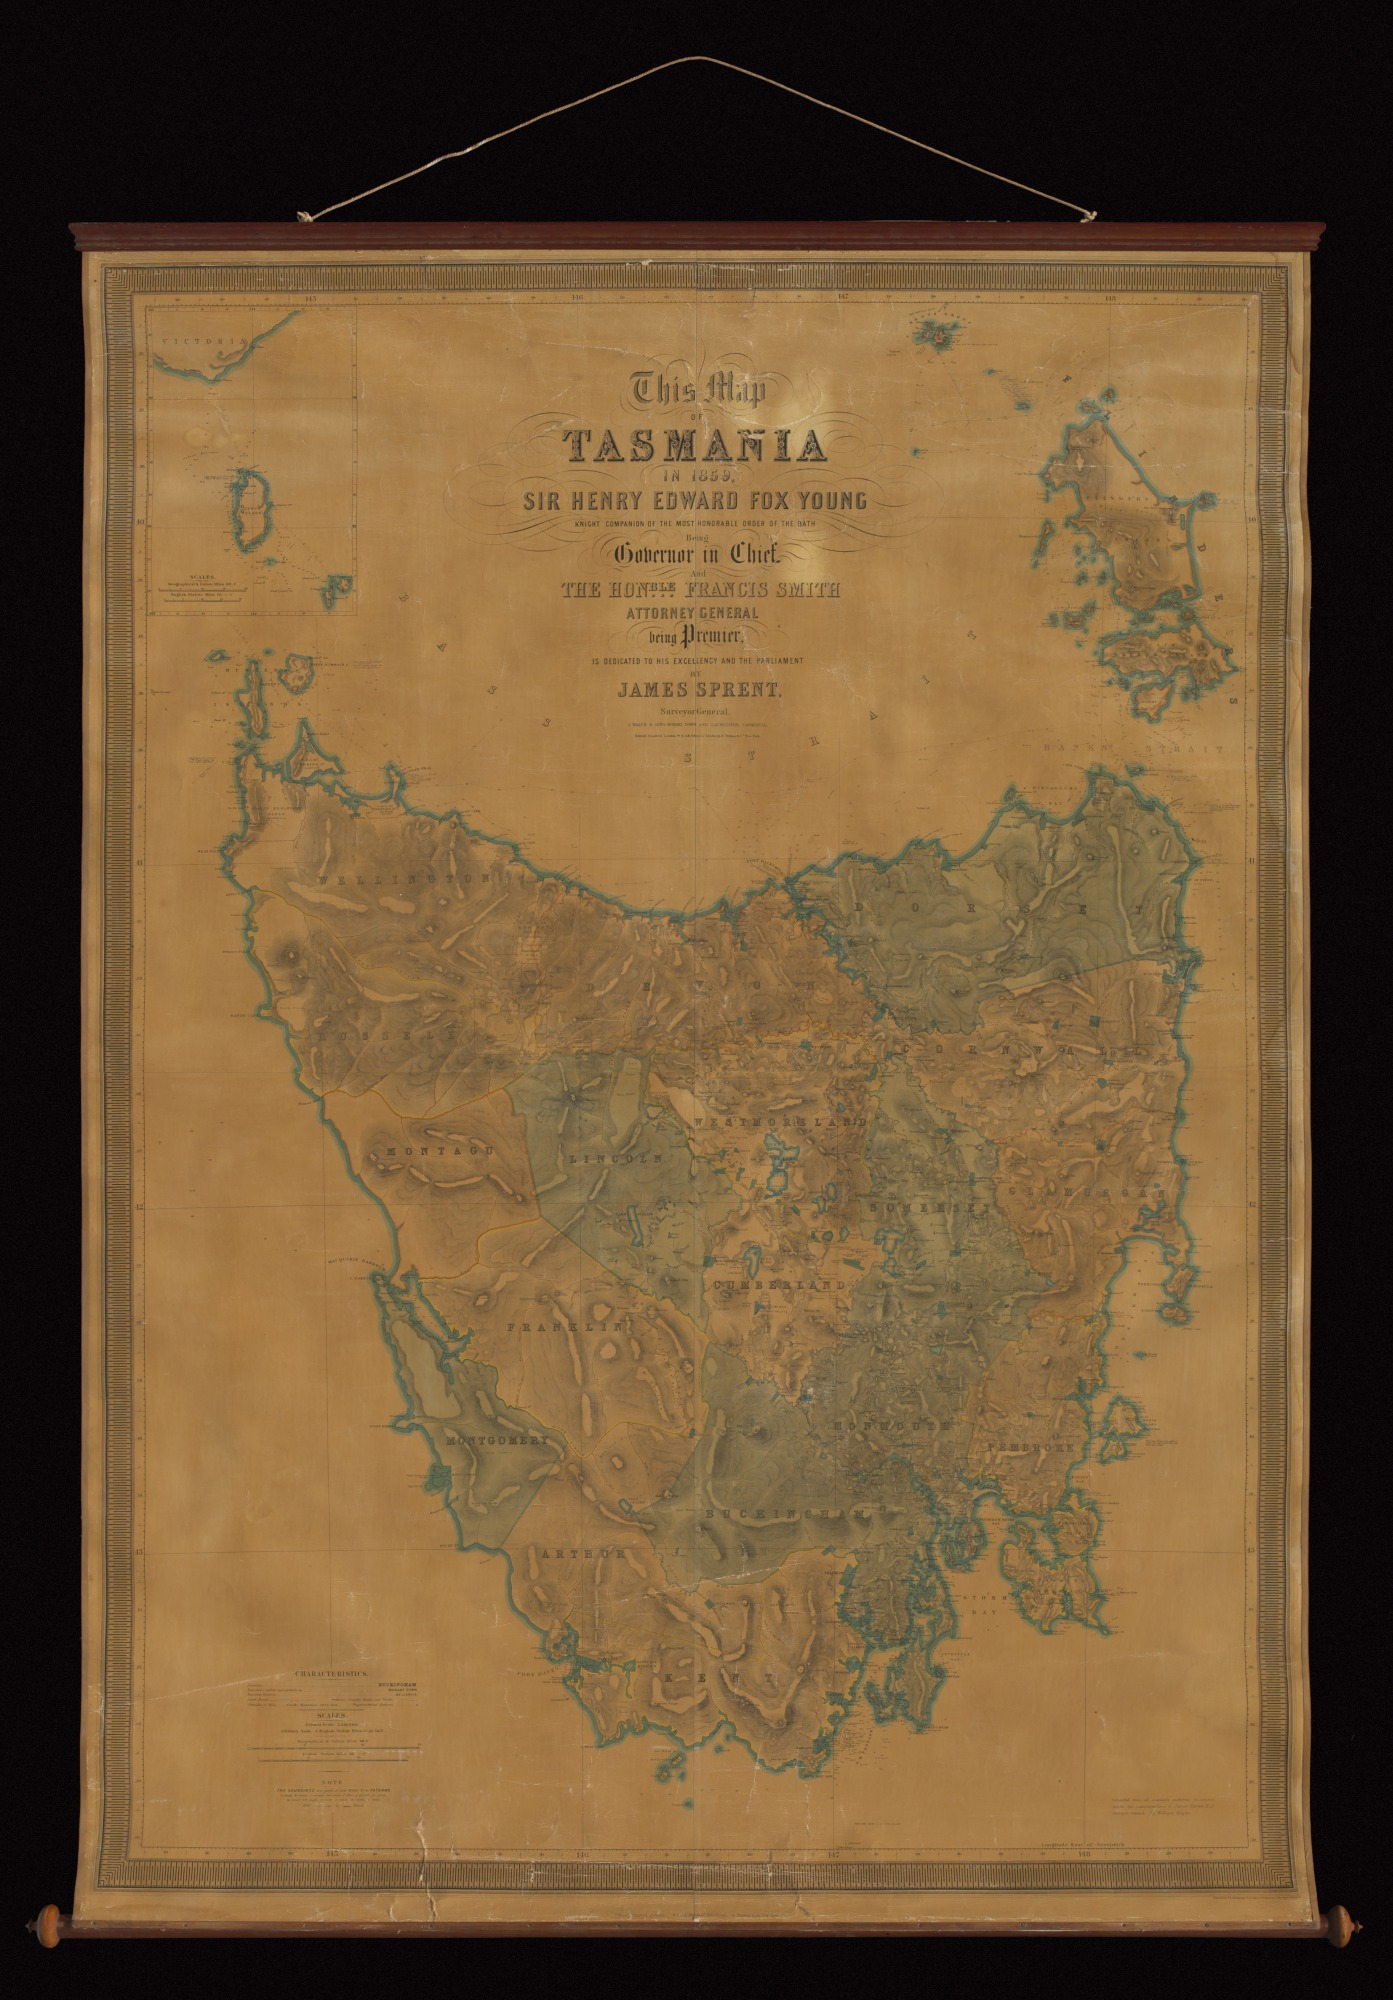 Map of Tasmania by James Sprent, 1859.